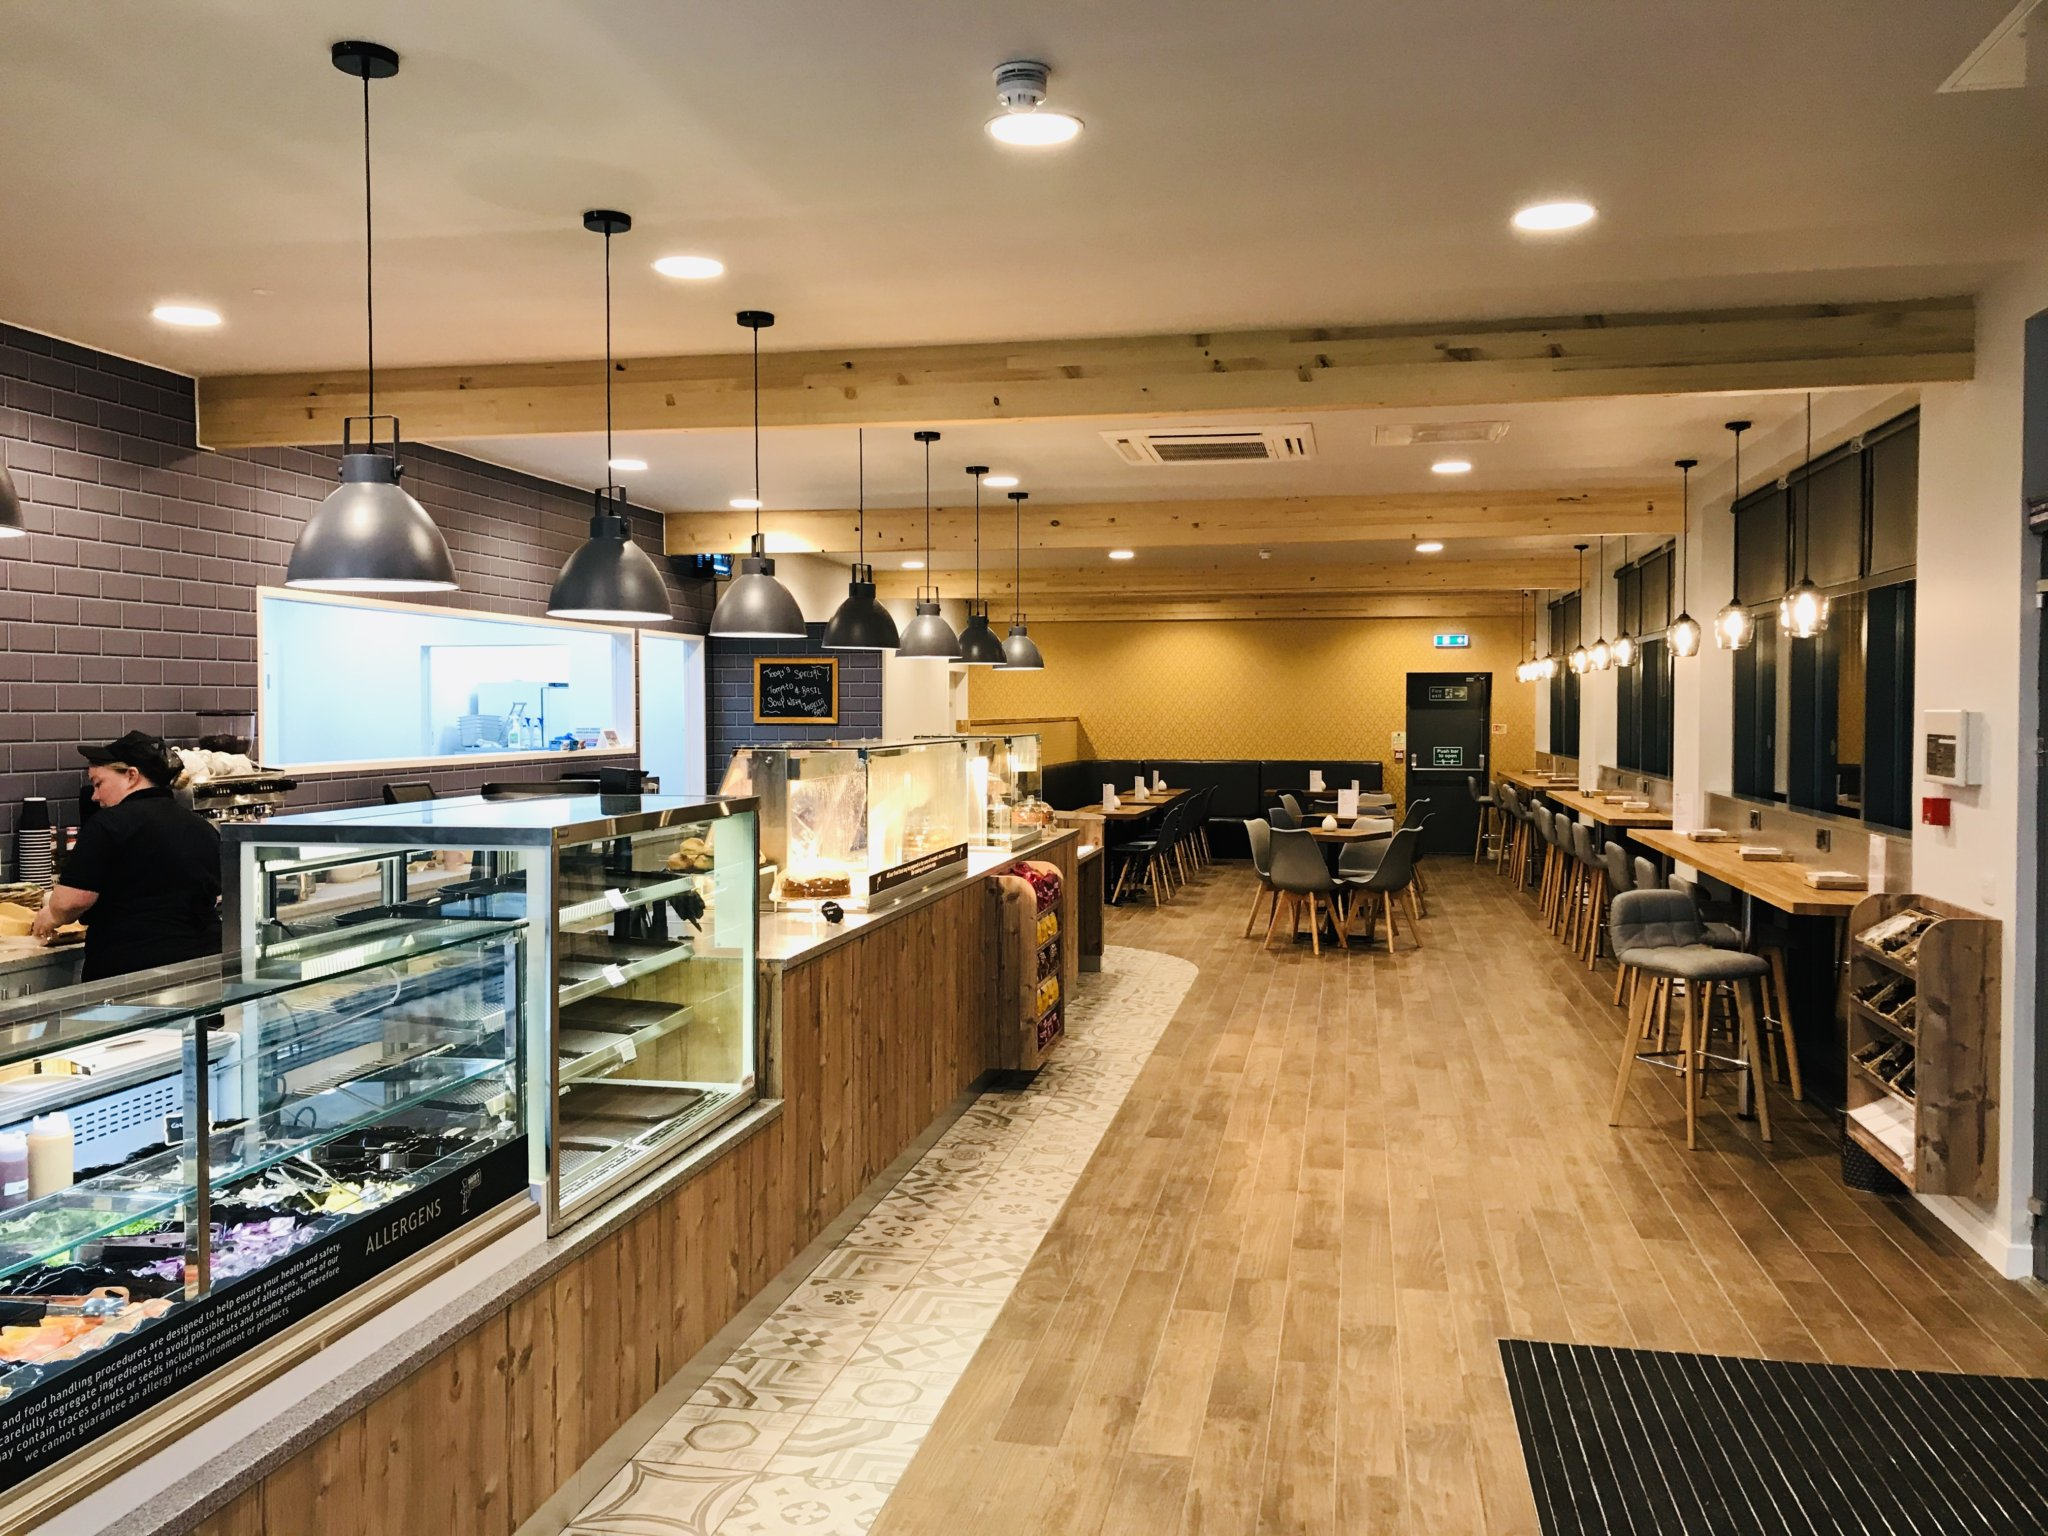 David S Kitchen Pushes The Convenience Envelope In Scotland Global C Store Focus